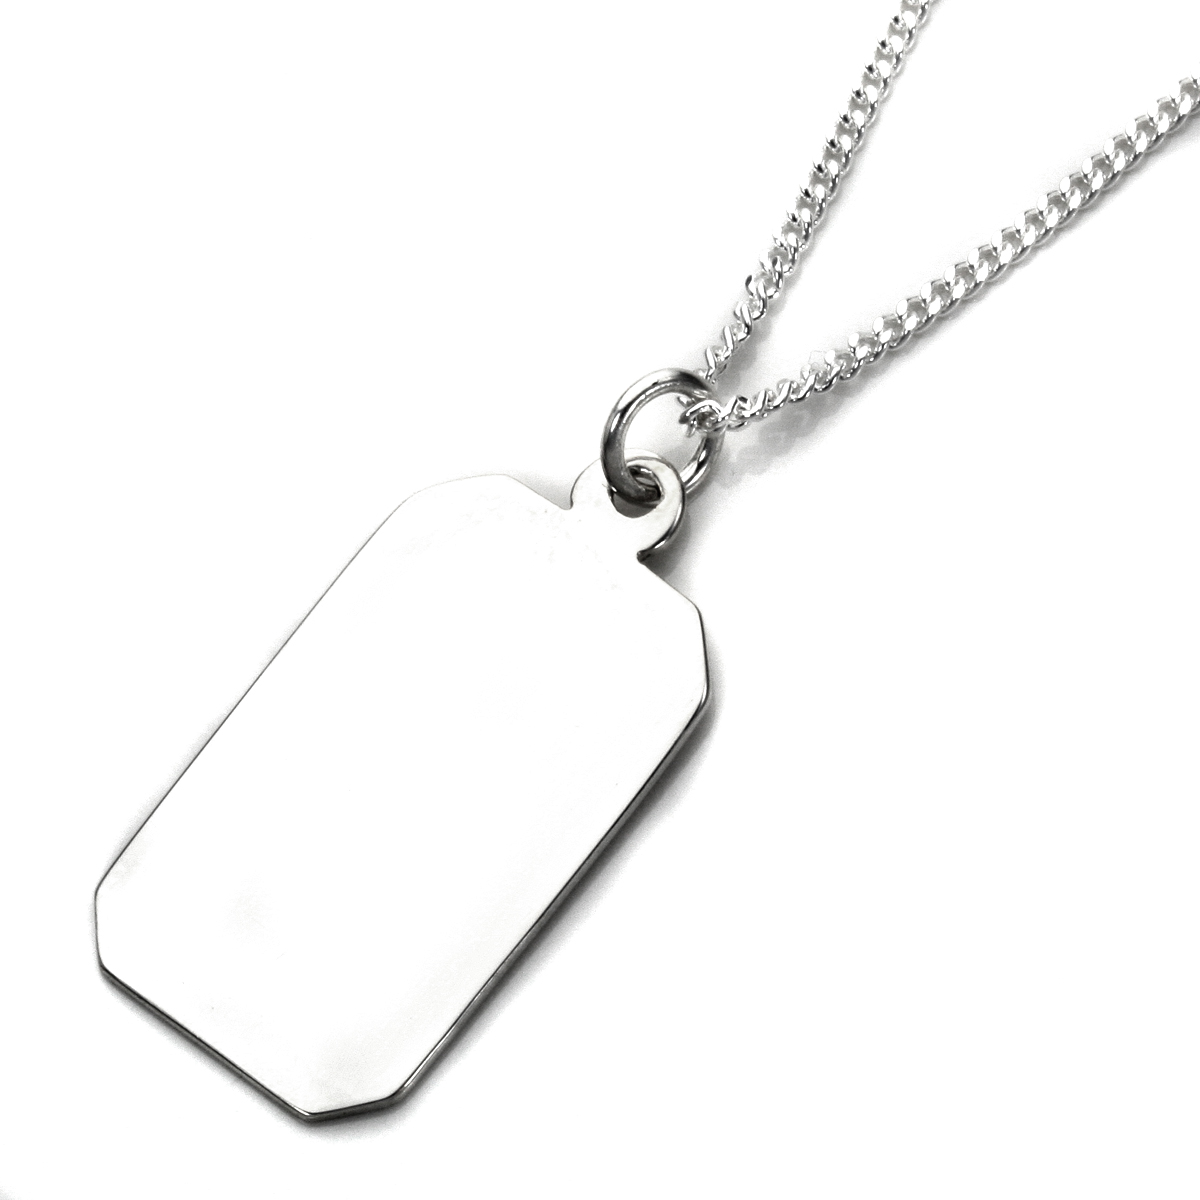 An image of Sterling Silver Large Engravable Rectangular Pendant